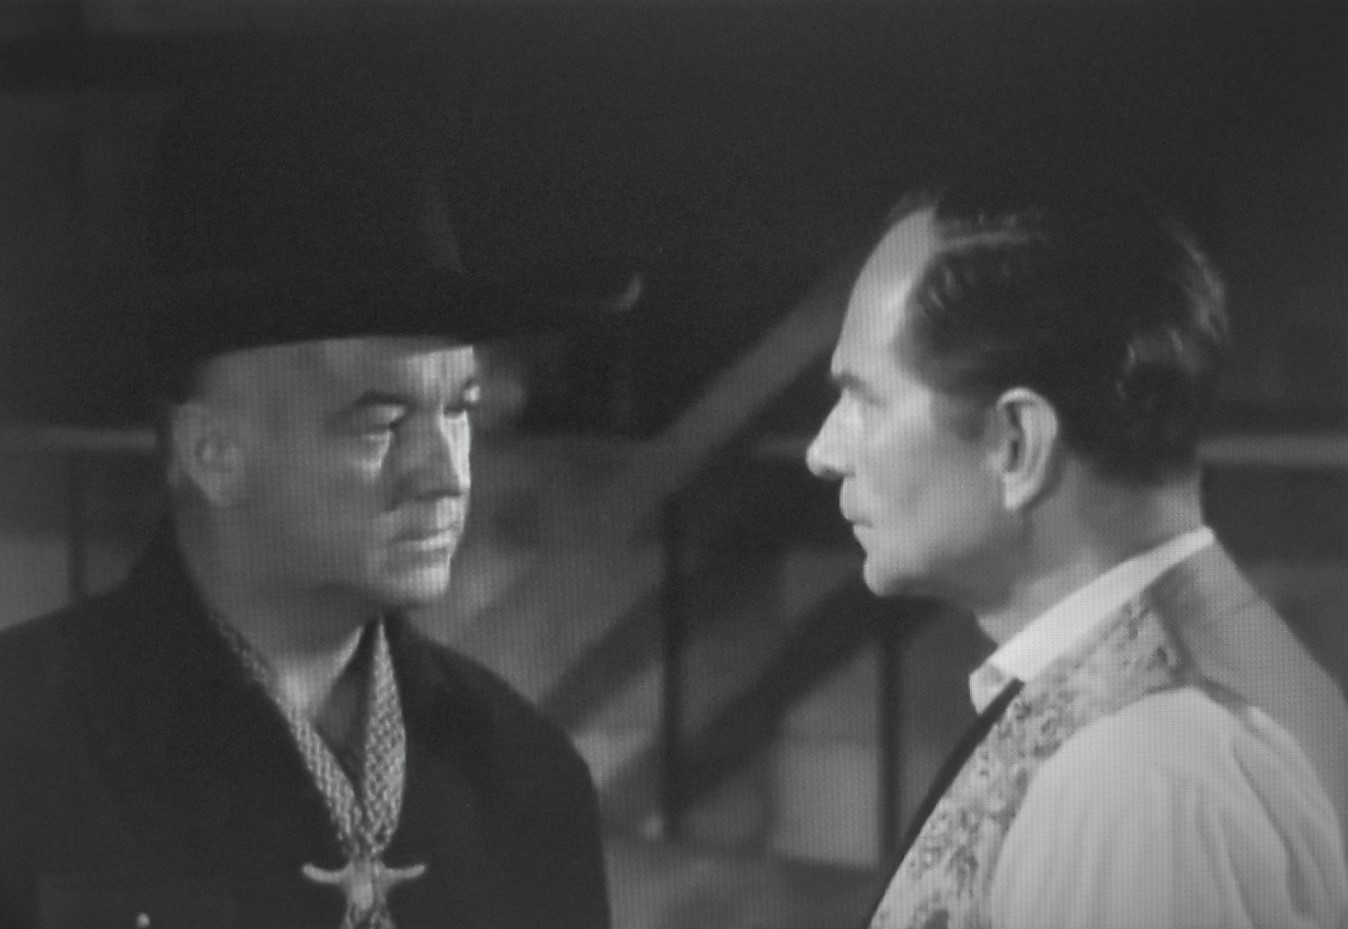 William Boyd and Earle Hodgins in Silent Conflict (1948)